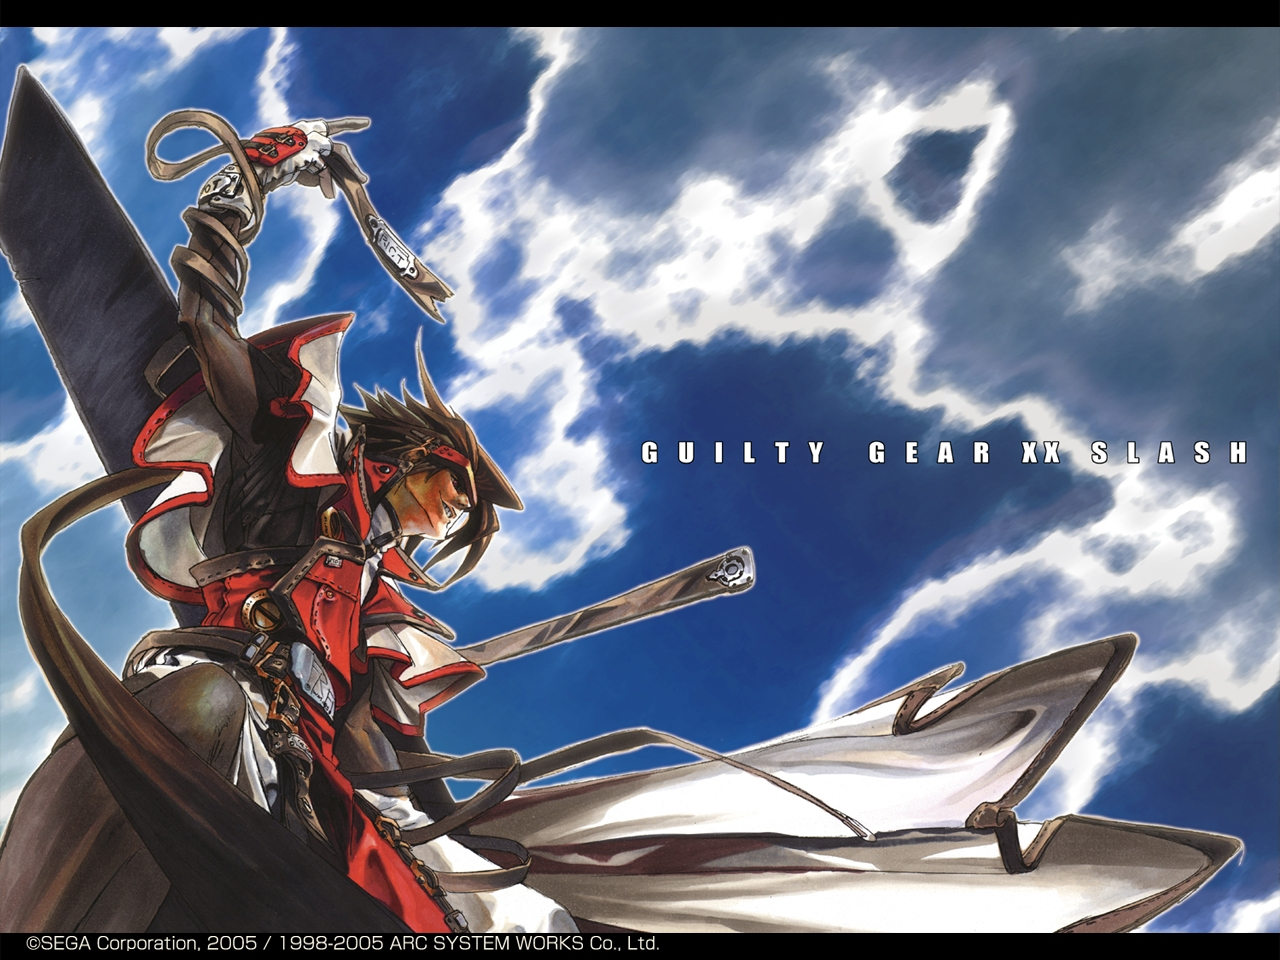 Dragon Wallpaper Hd For Pc Holy Order Sol Guilty Gear Xx